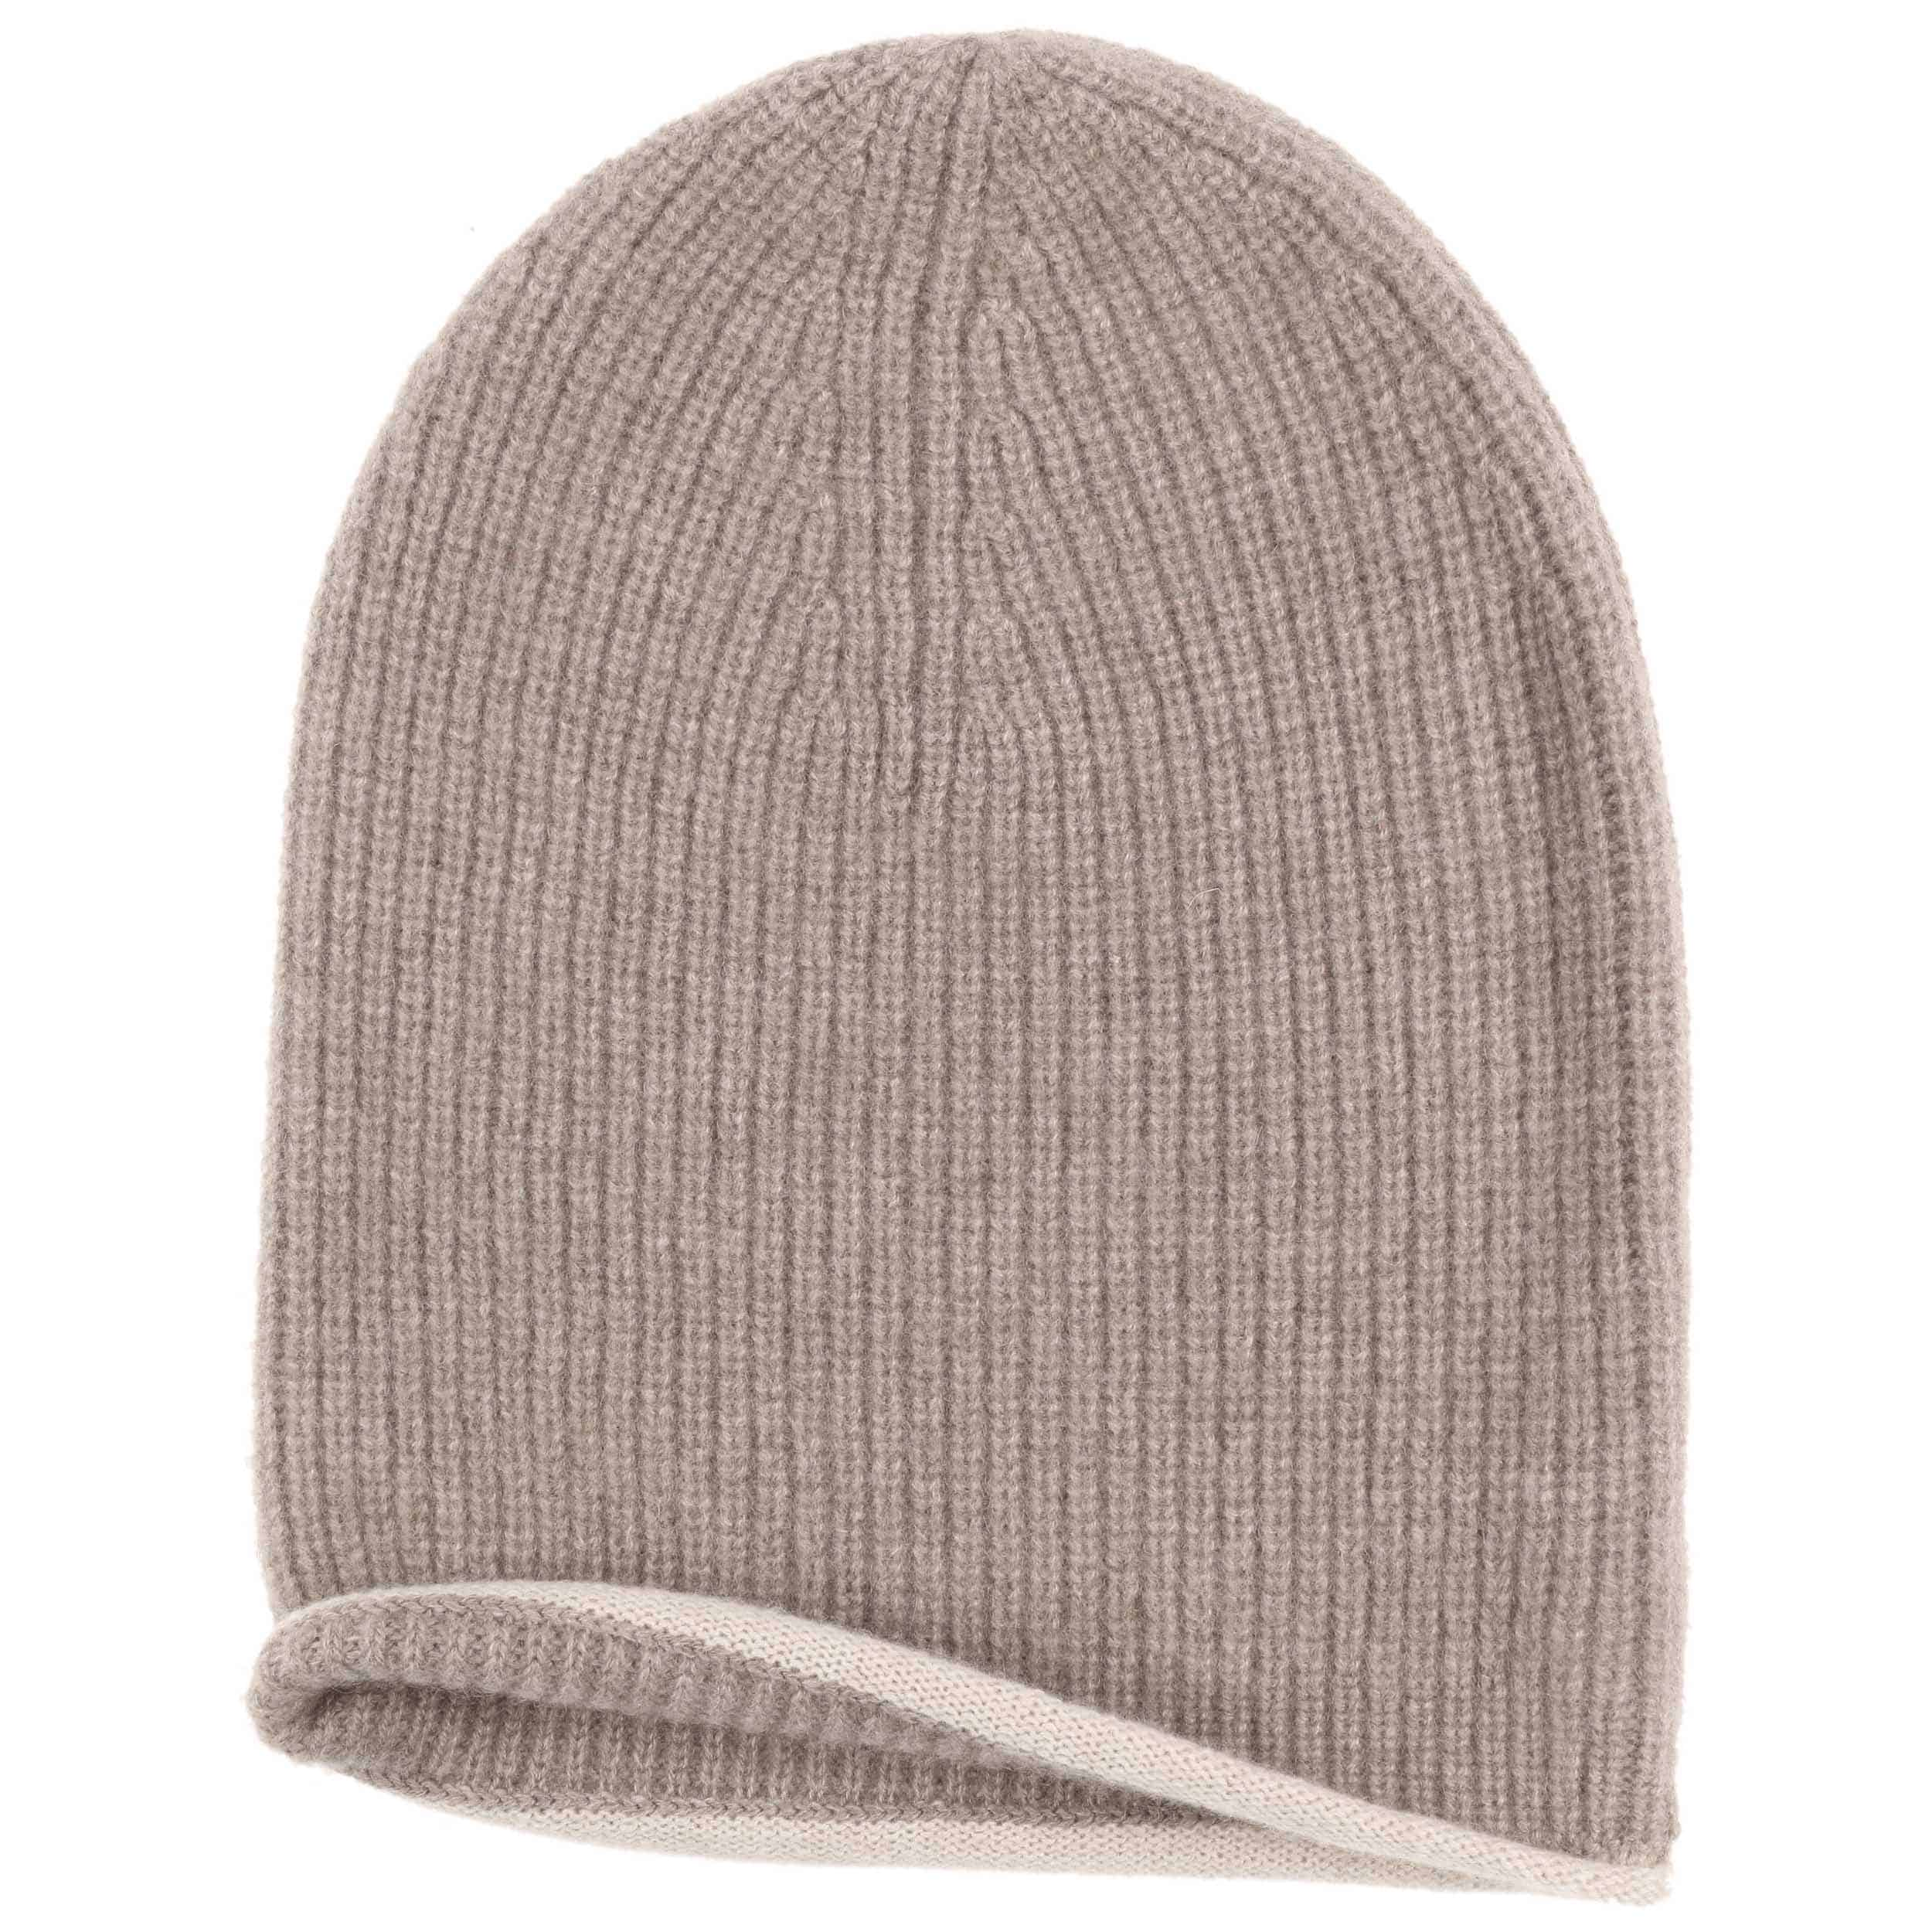 ac665112af601 Wisconsin Cashmere Long Beanie by Stetson - beige 1 ...